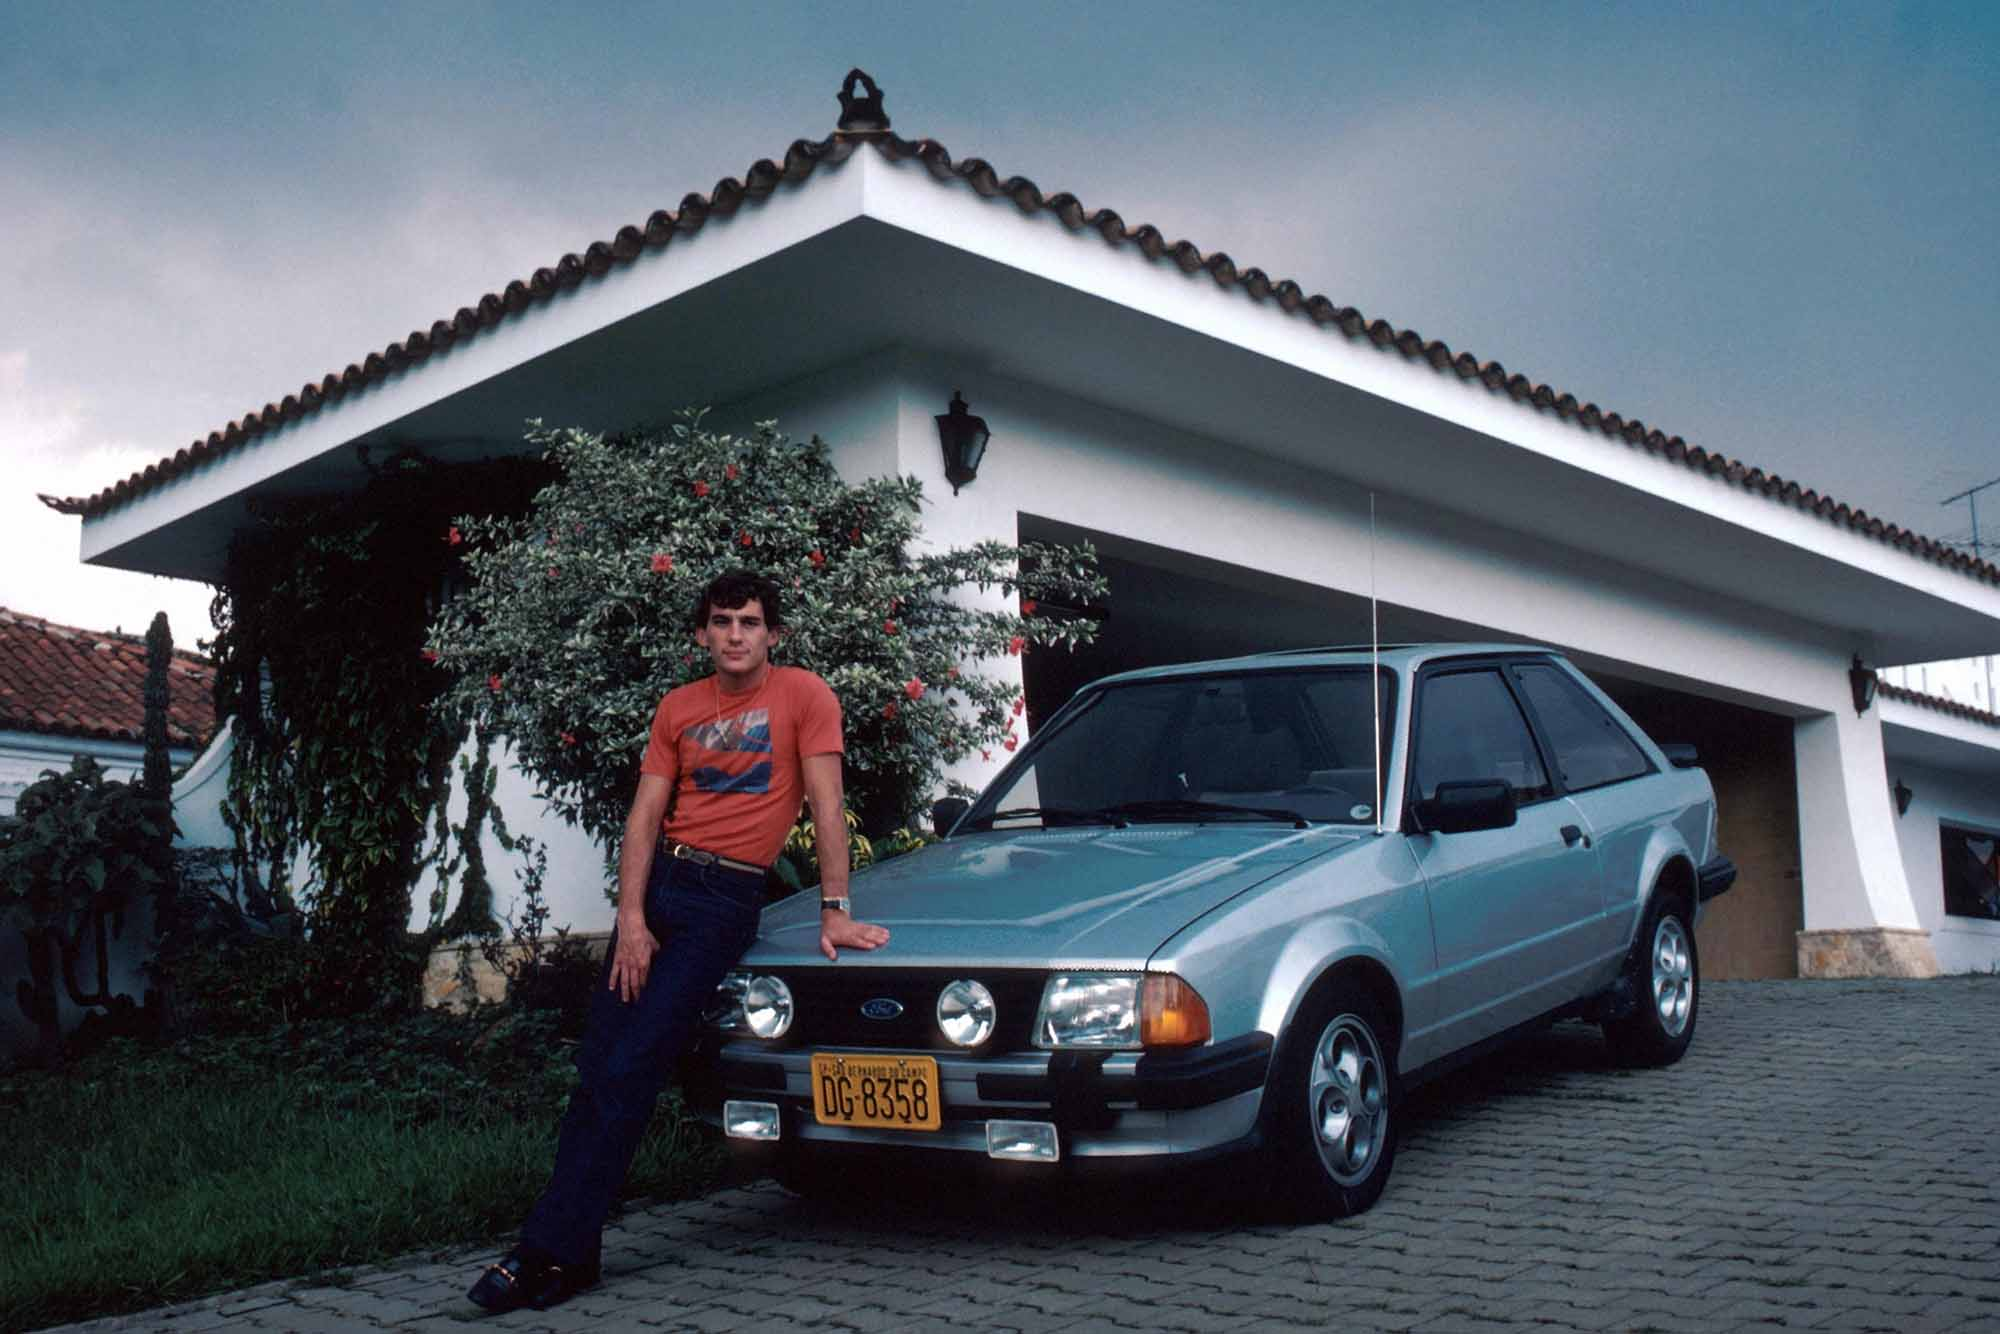 Ayrton Senna with his Ford Escort XR3 outside his family home in Brazil